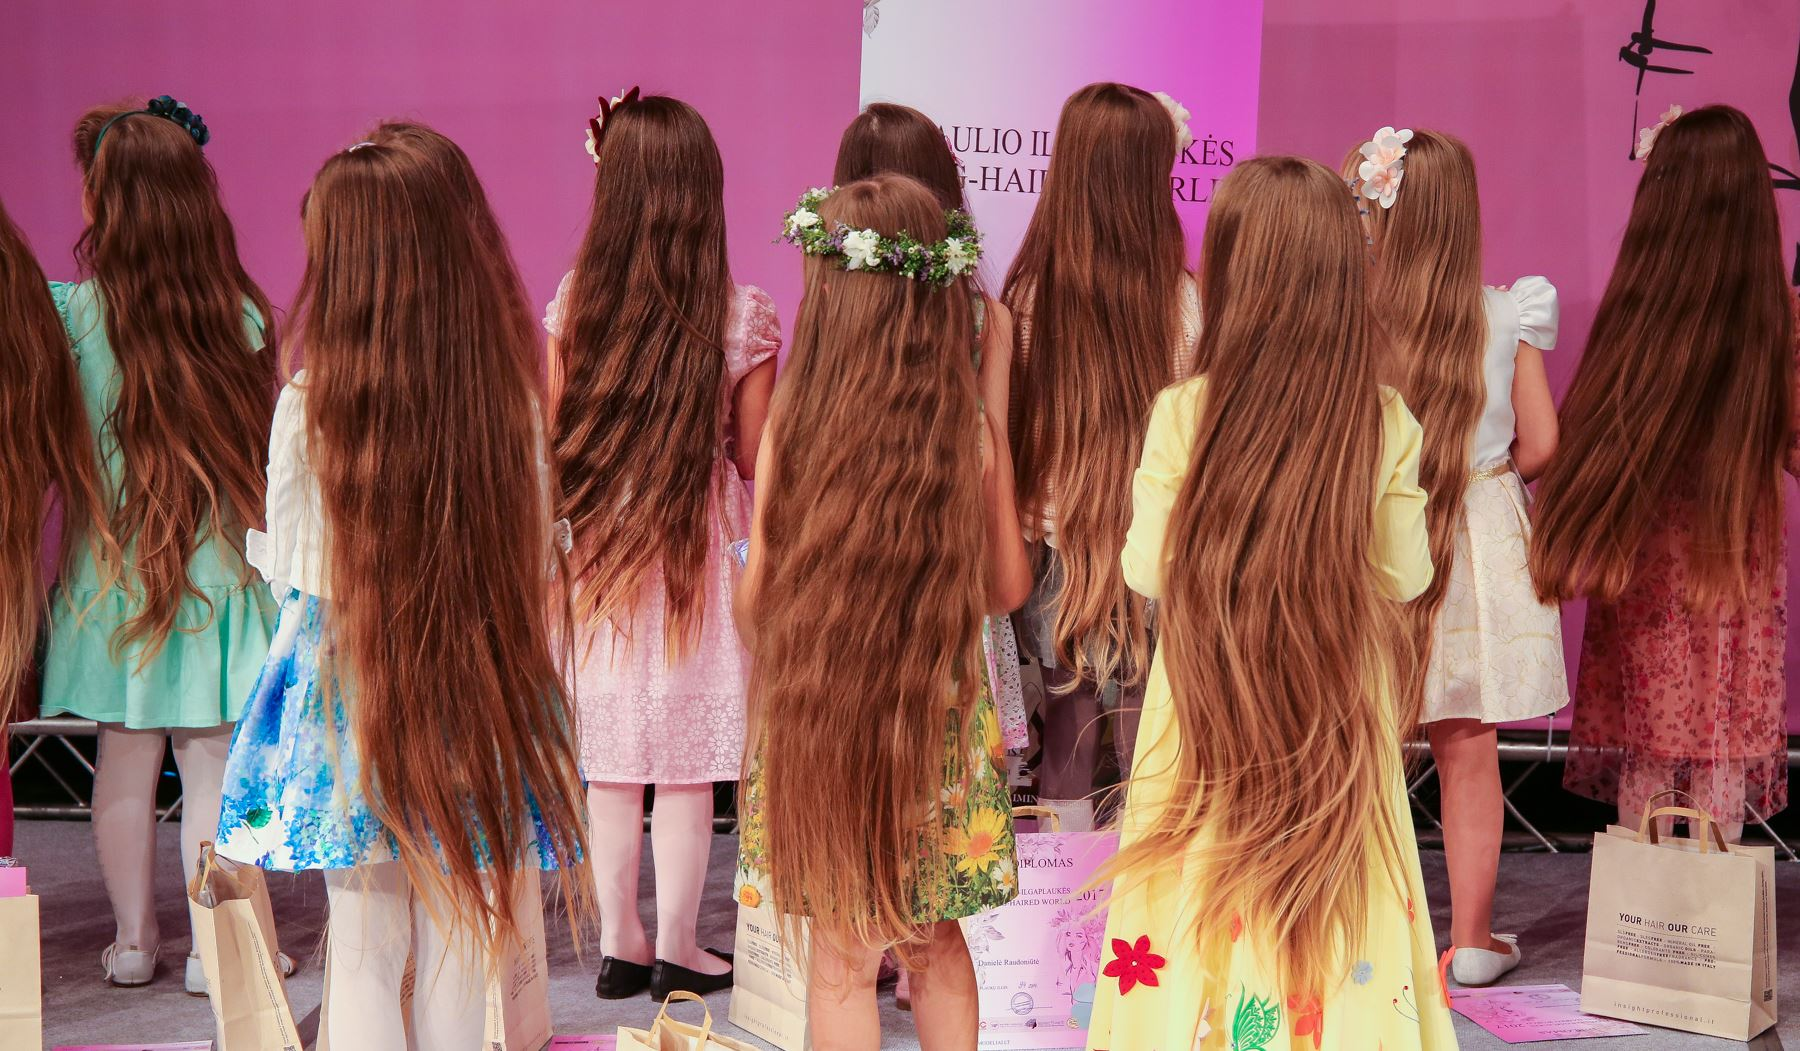 Lithuanian girls compete in long hair contest | SBS Life